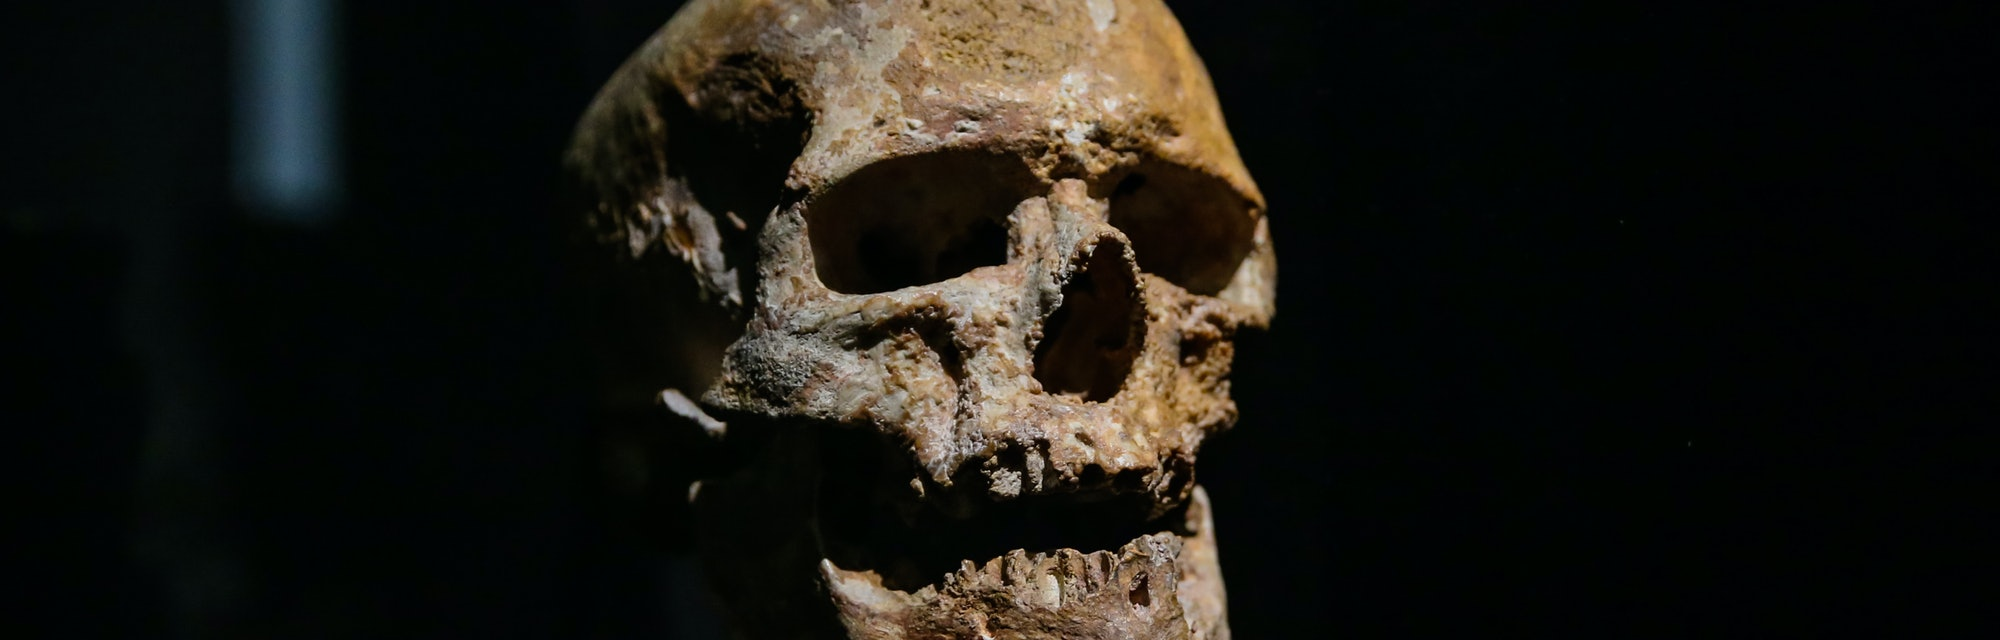 Ancient human skull against a black background